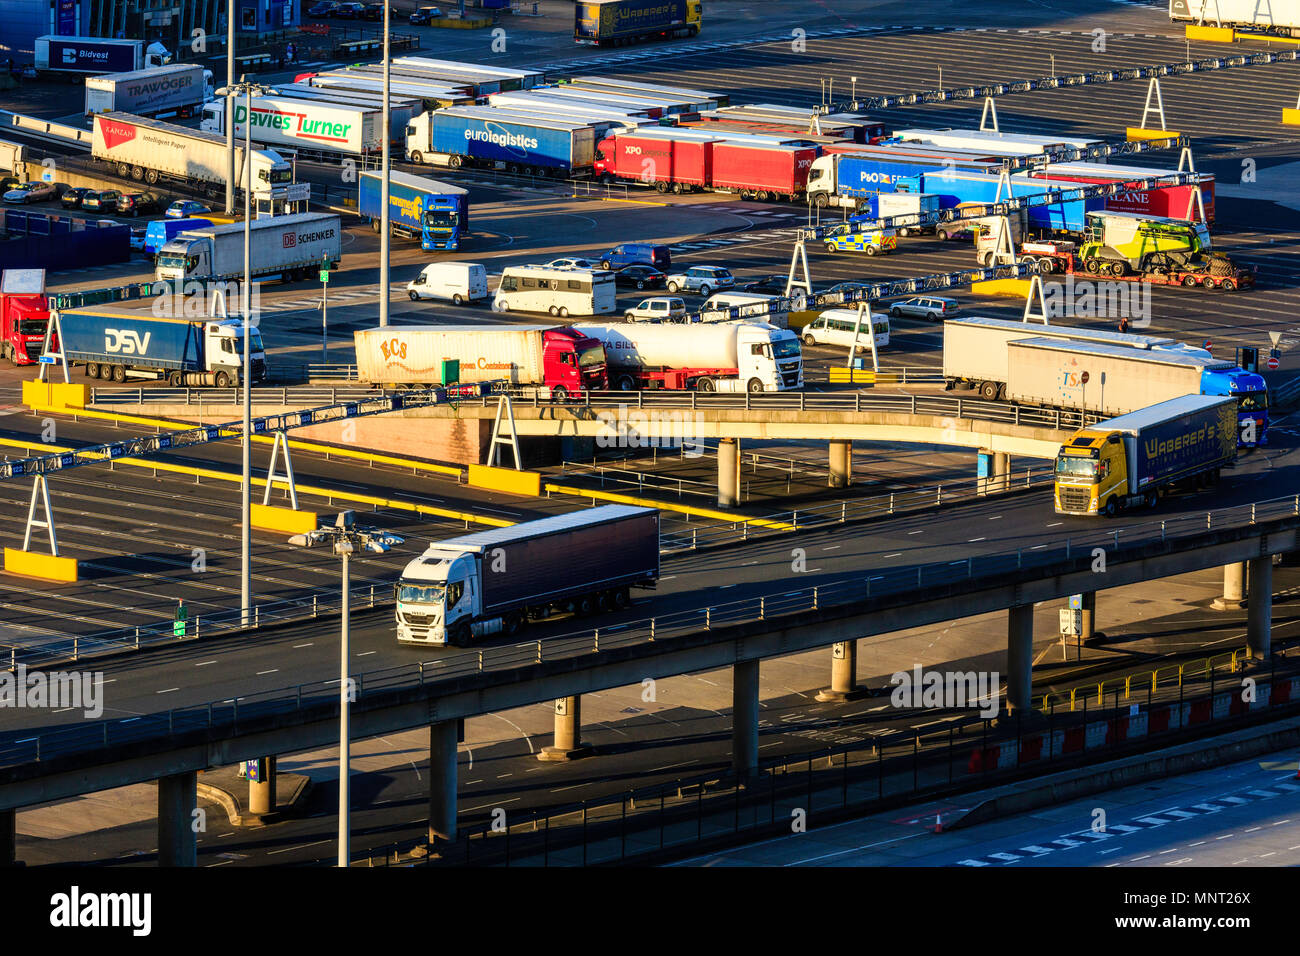 England, Dover harbour. HGVs and trucks heading towards passport control, driving along port roads after disembarking from ferry. Golden Hour. Stock Photo